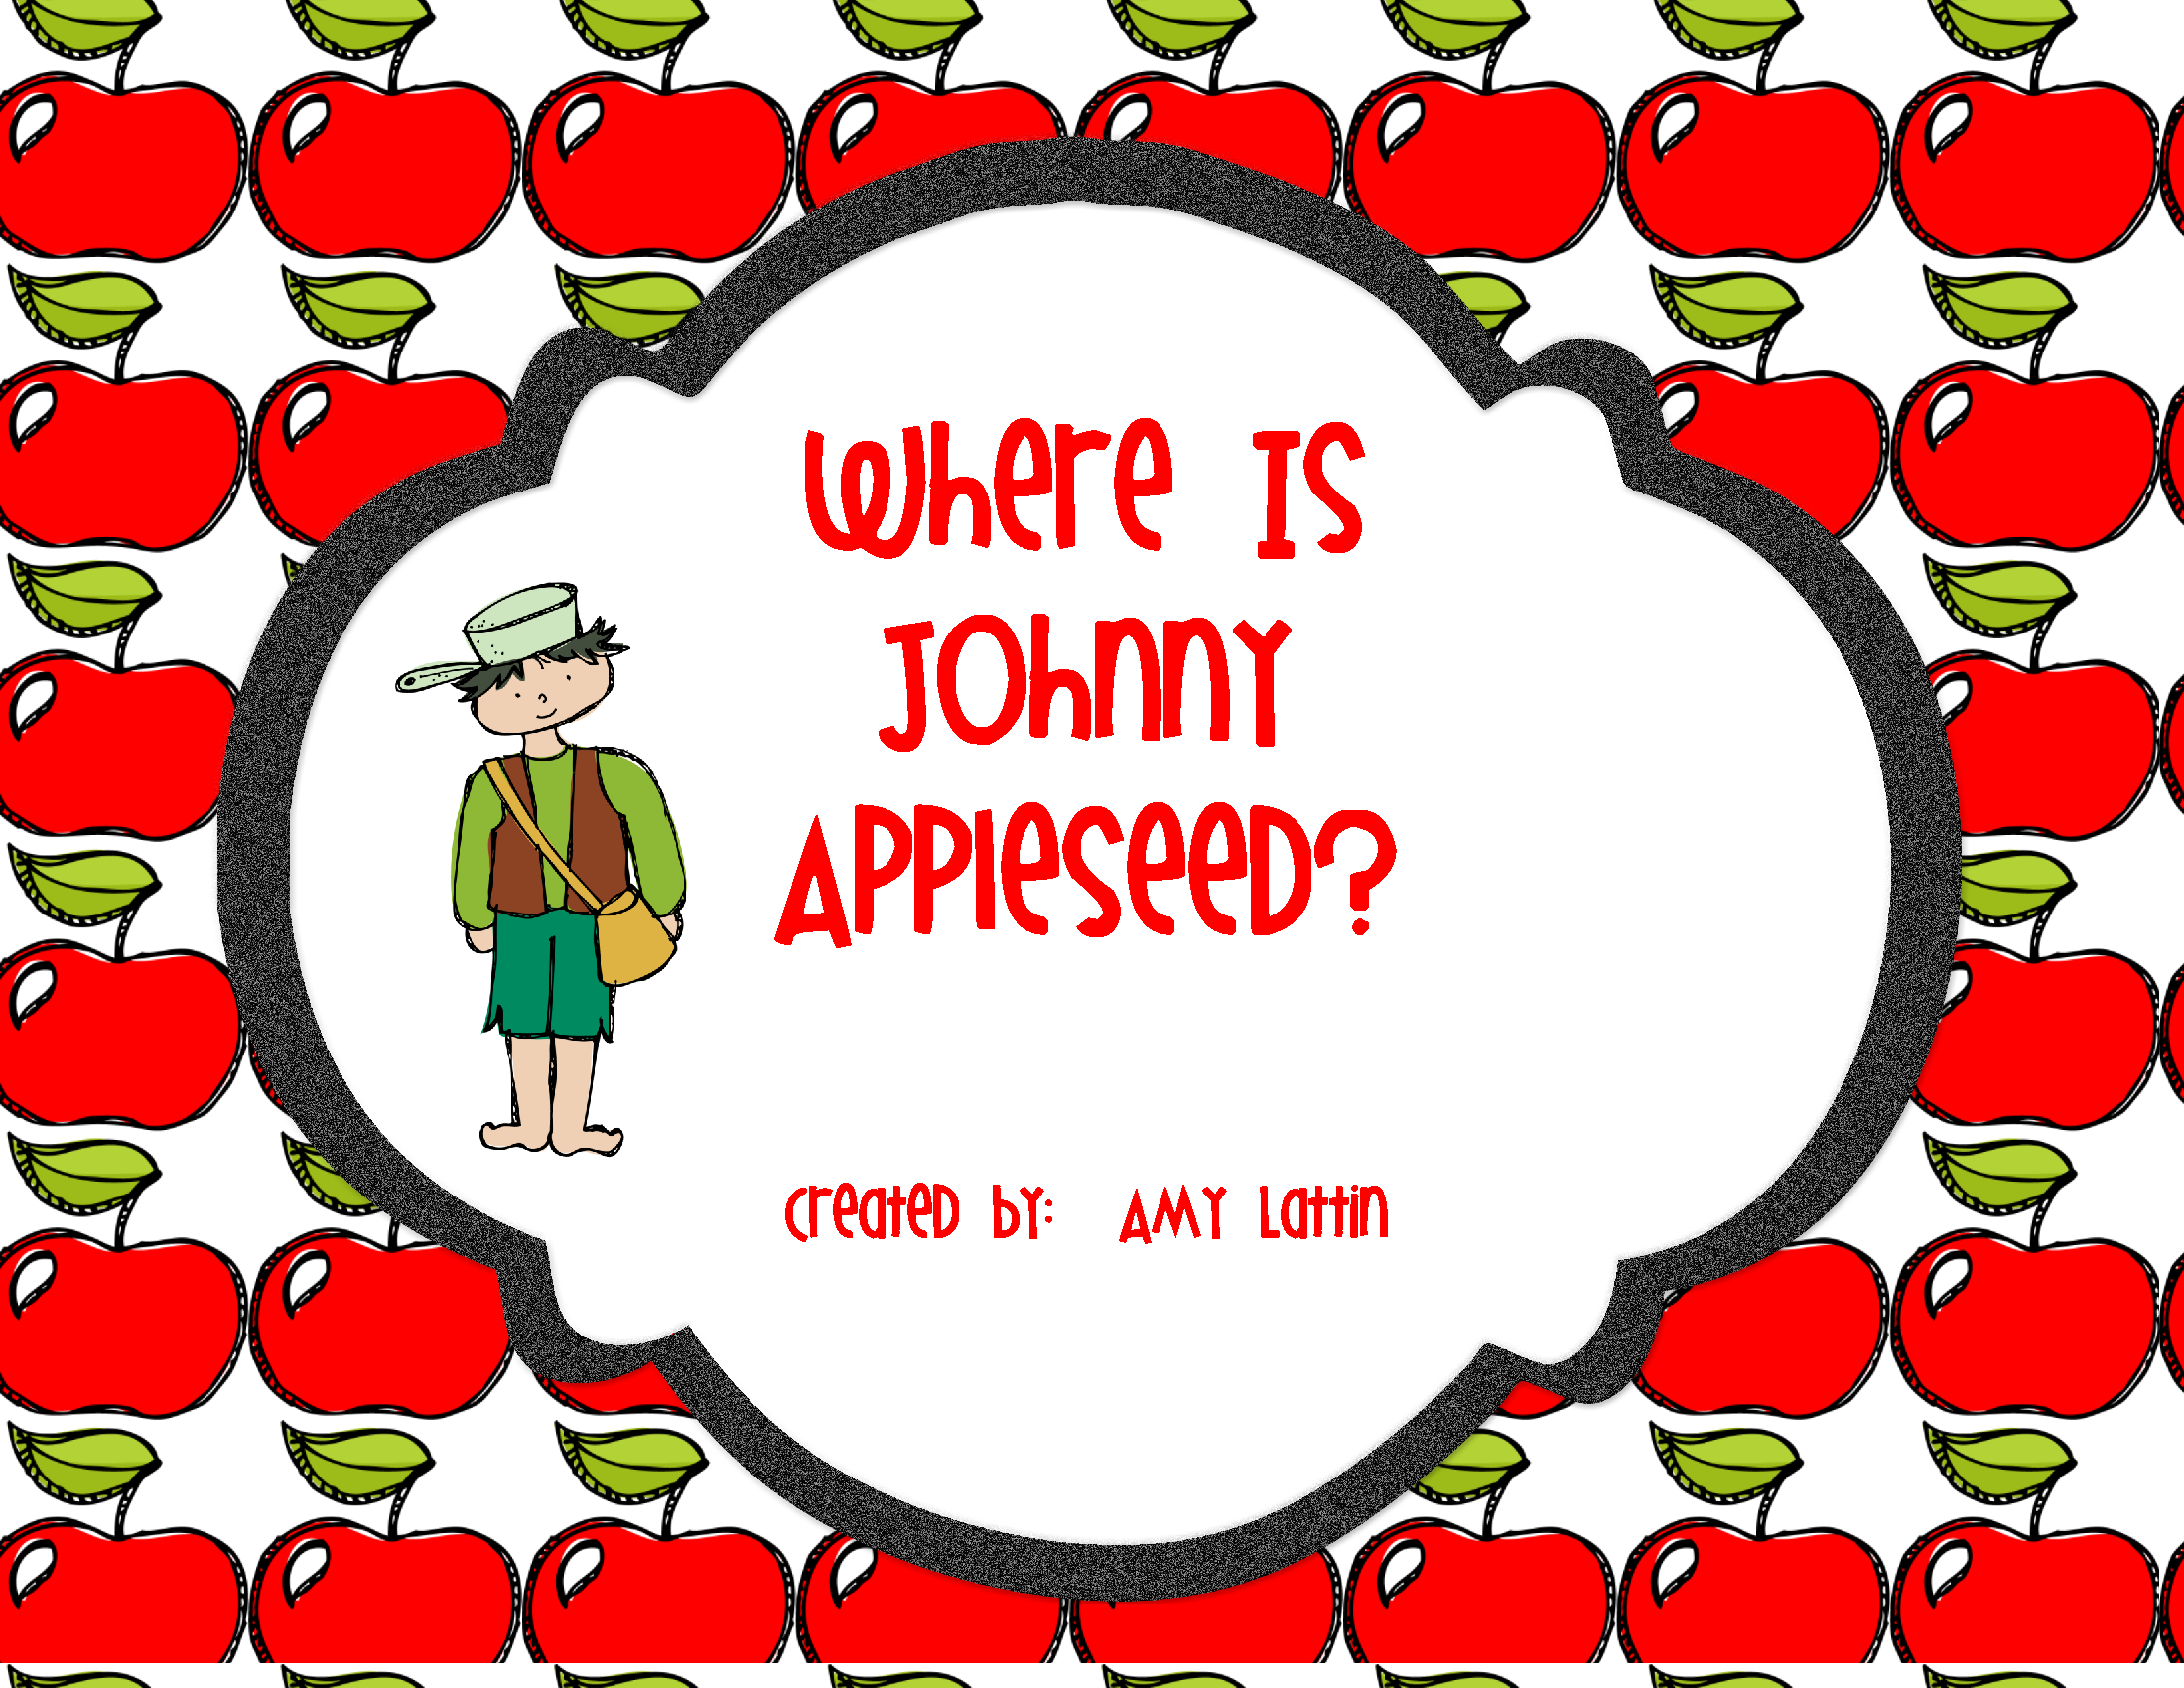 Where Is Johnny Appleseed